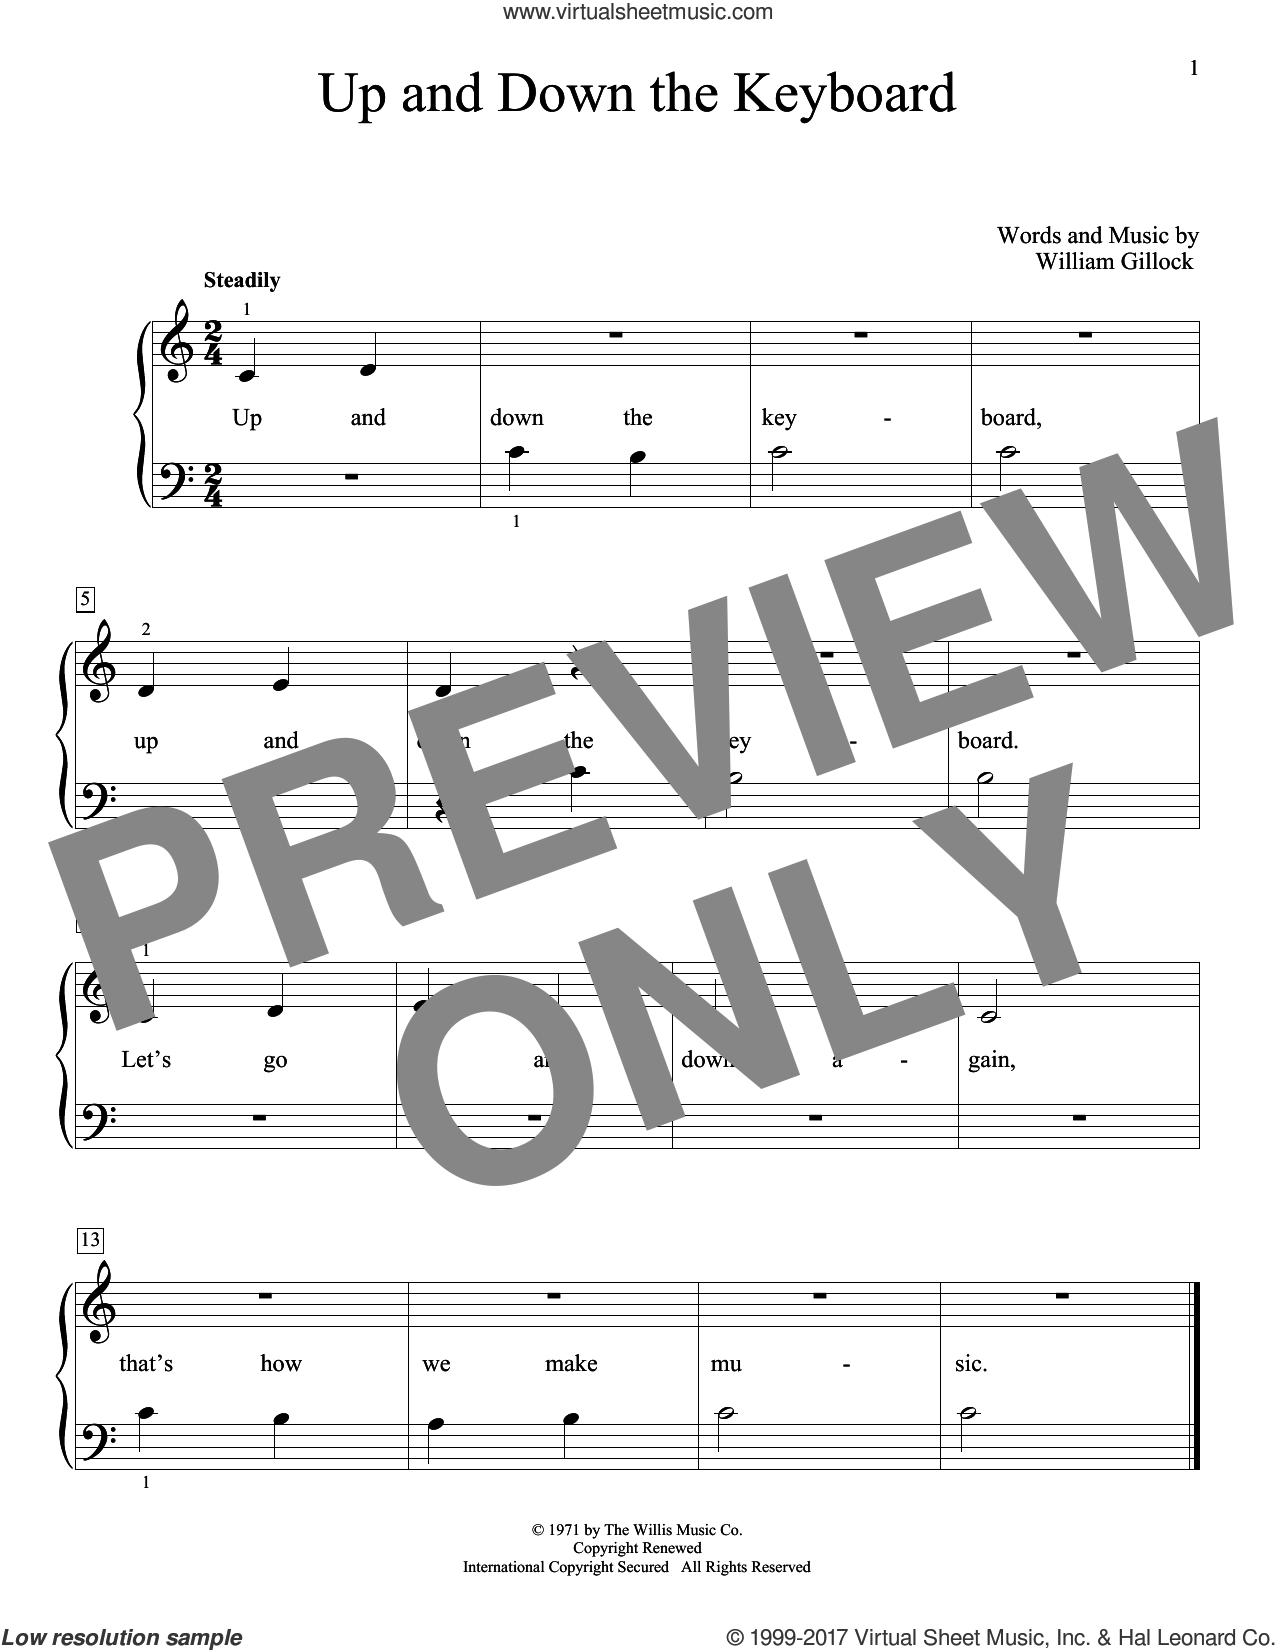 Up And Down The Keyboard sheet music for piano solo (elementary) by William Gillock. Score Image Preview.